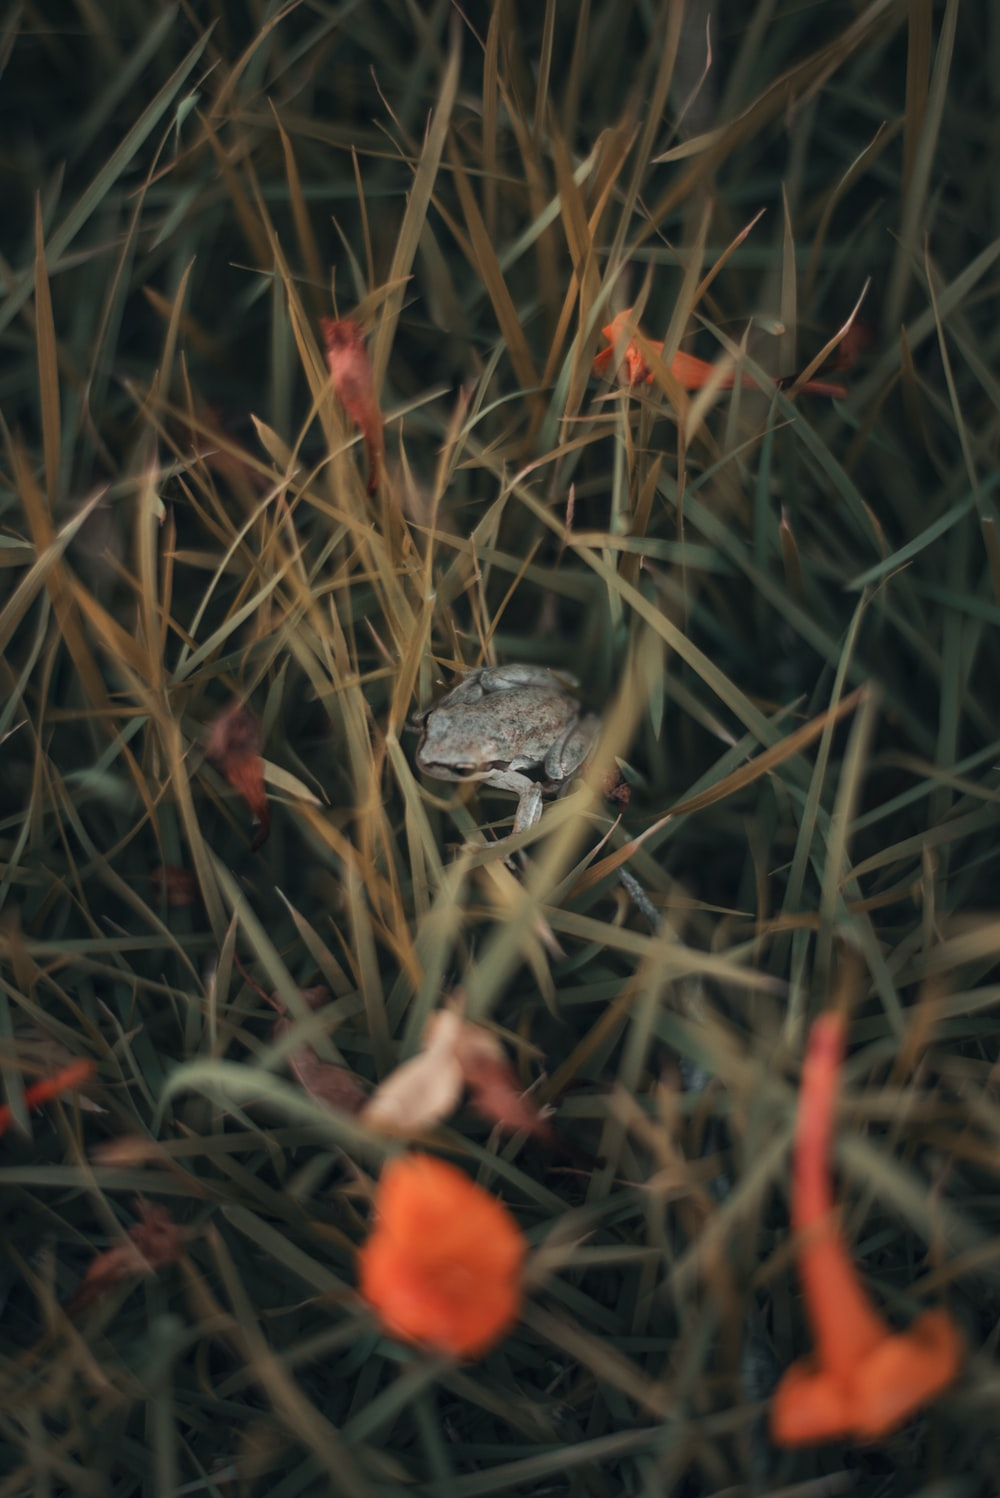 selective focus photography of gray frog